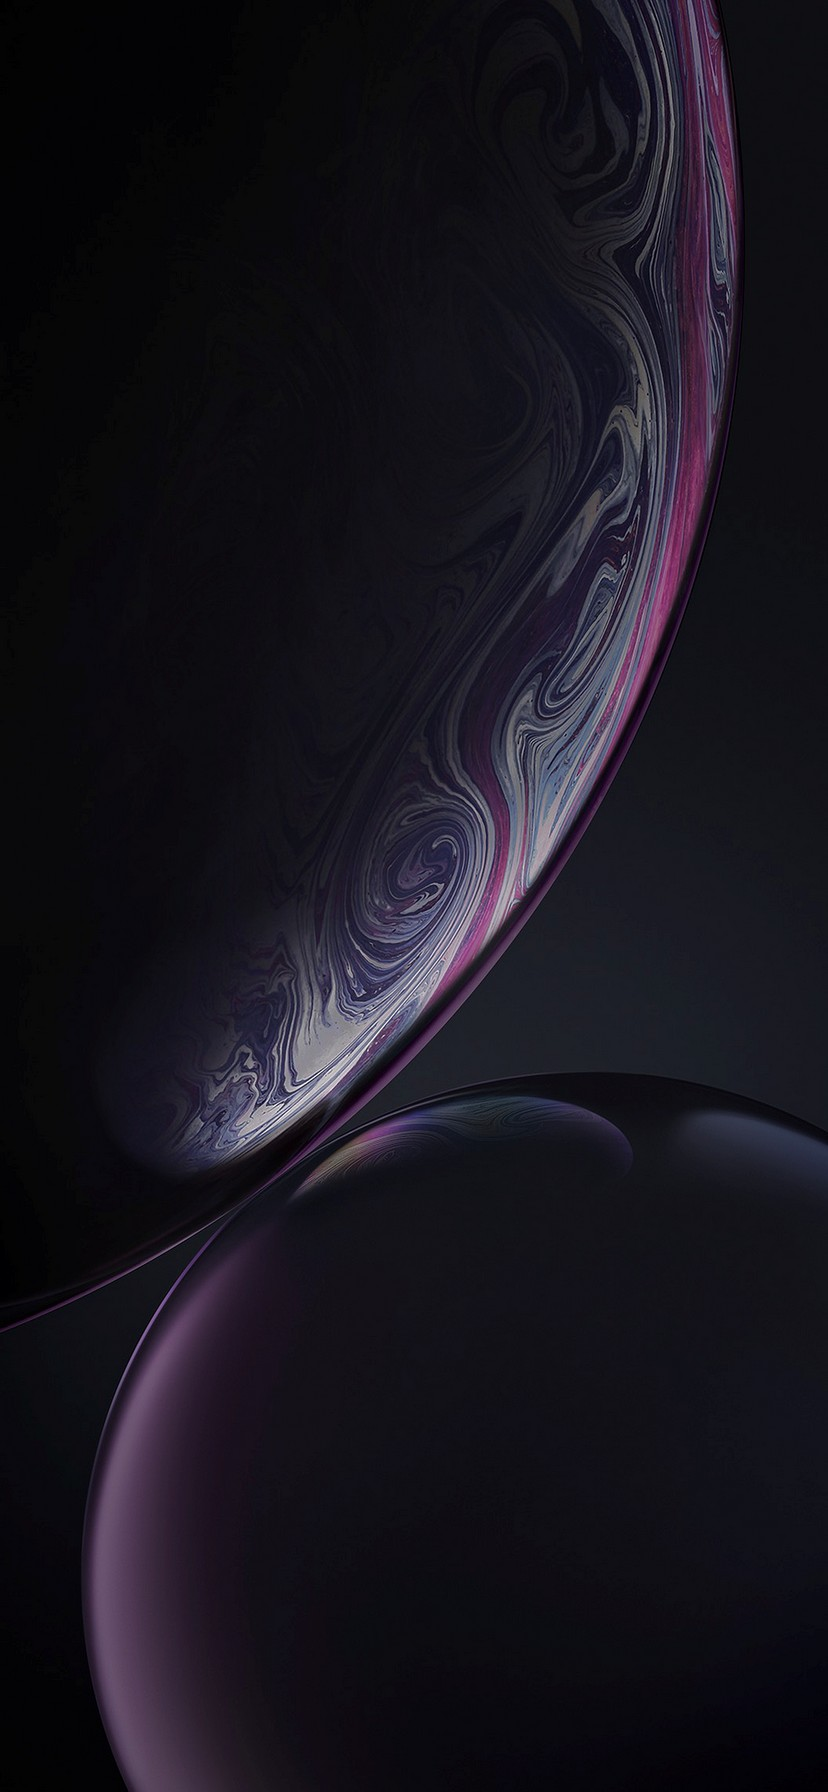 550+iPhone XR Wallpapers on WallpaperDog